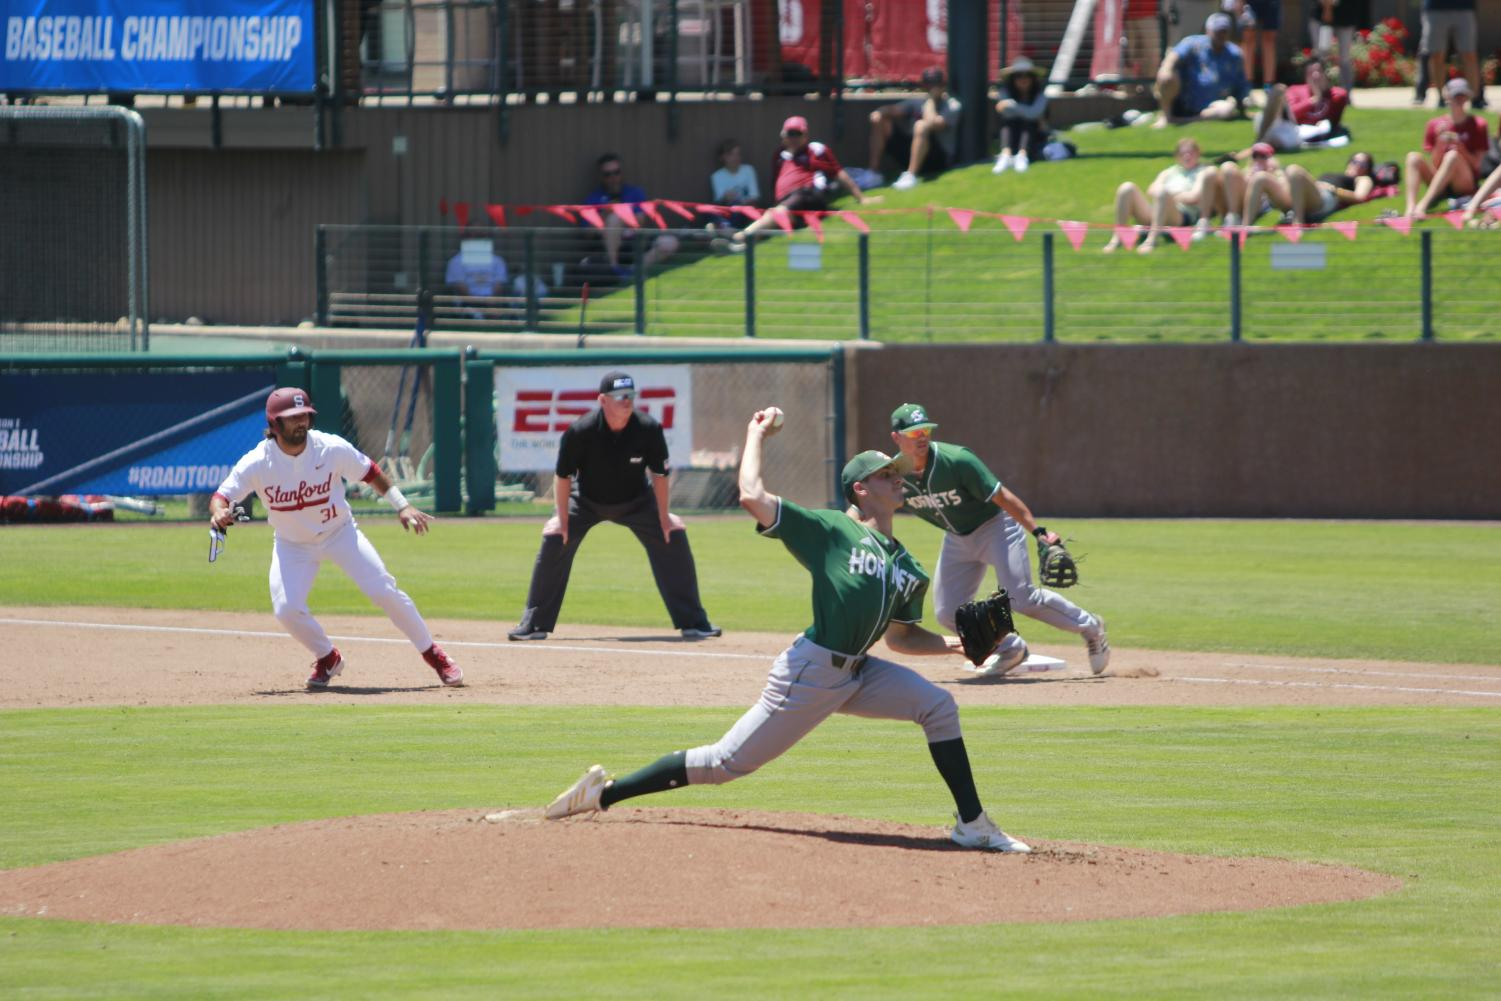 Sac State sophomore pitcher Scott Randall throws a pitch against Stanford University on Friday, June 1, 2019 at Sunken Diamond. The Hornets lost to the Cardinal 11-0.